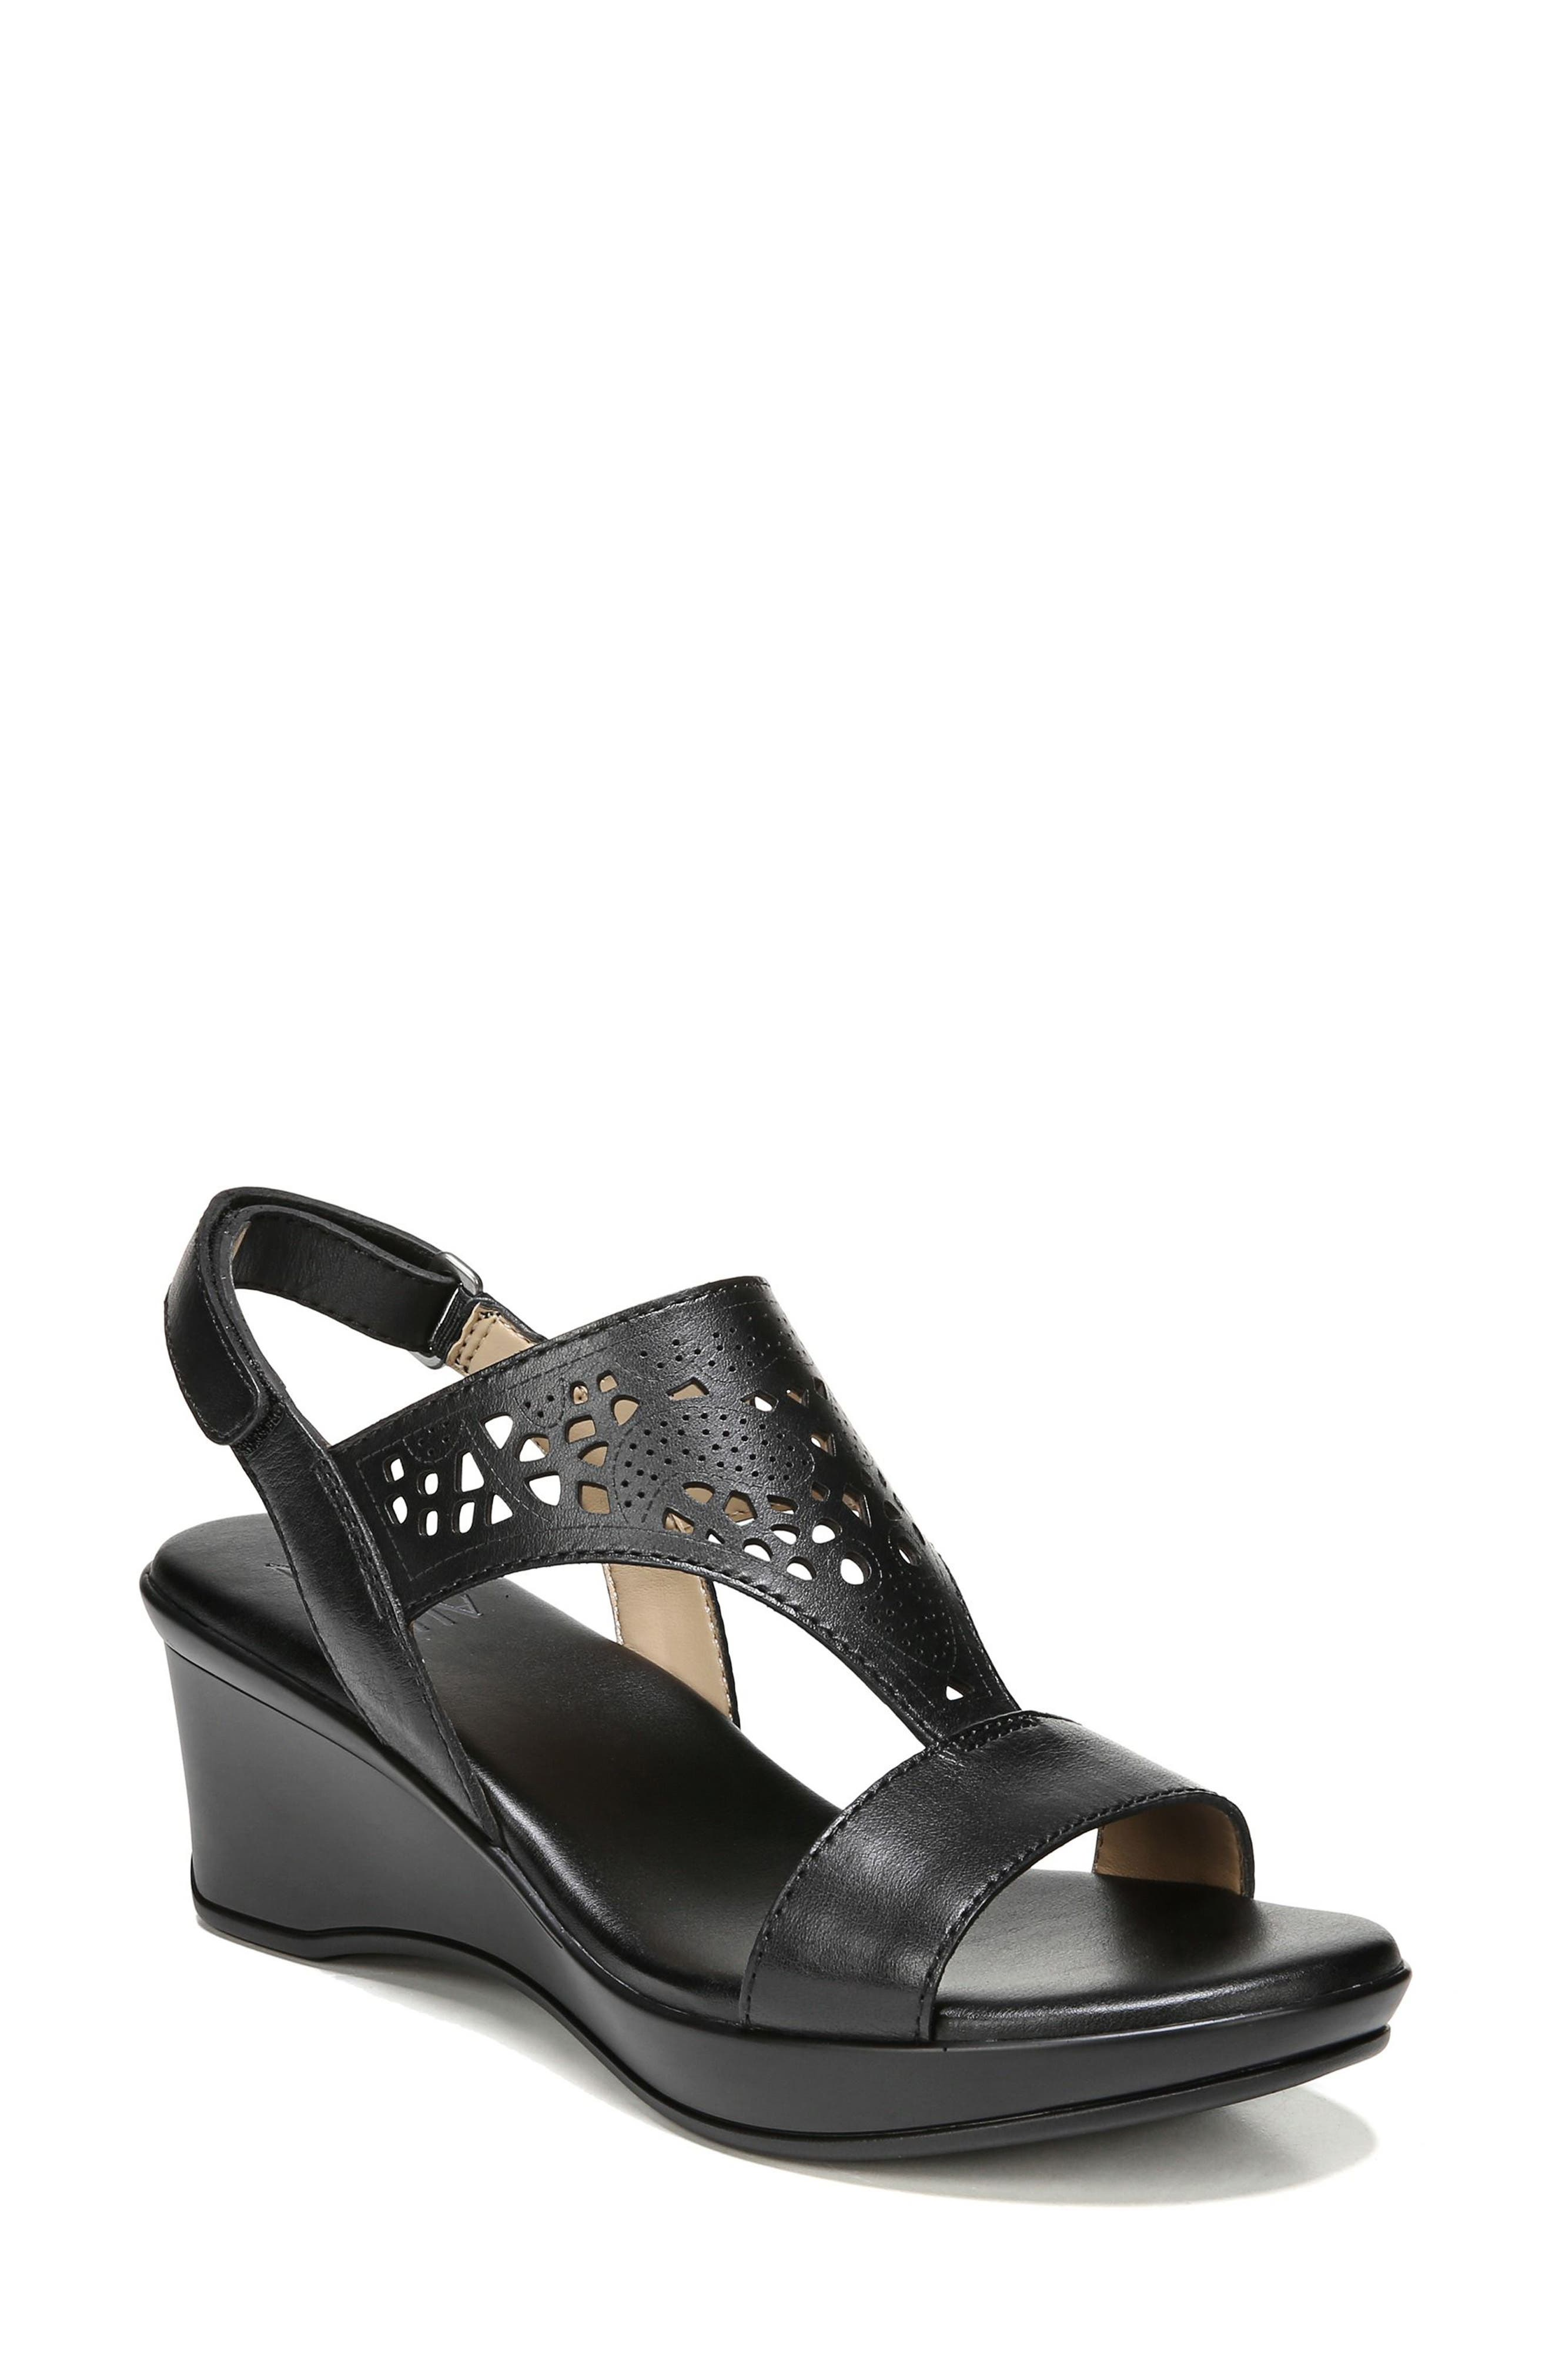 Veda Wedge Sandal,                         Main,                         color, BLACK LEATHER